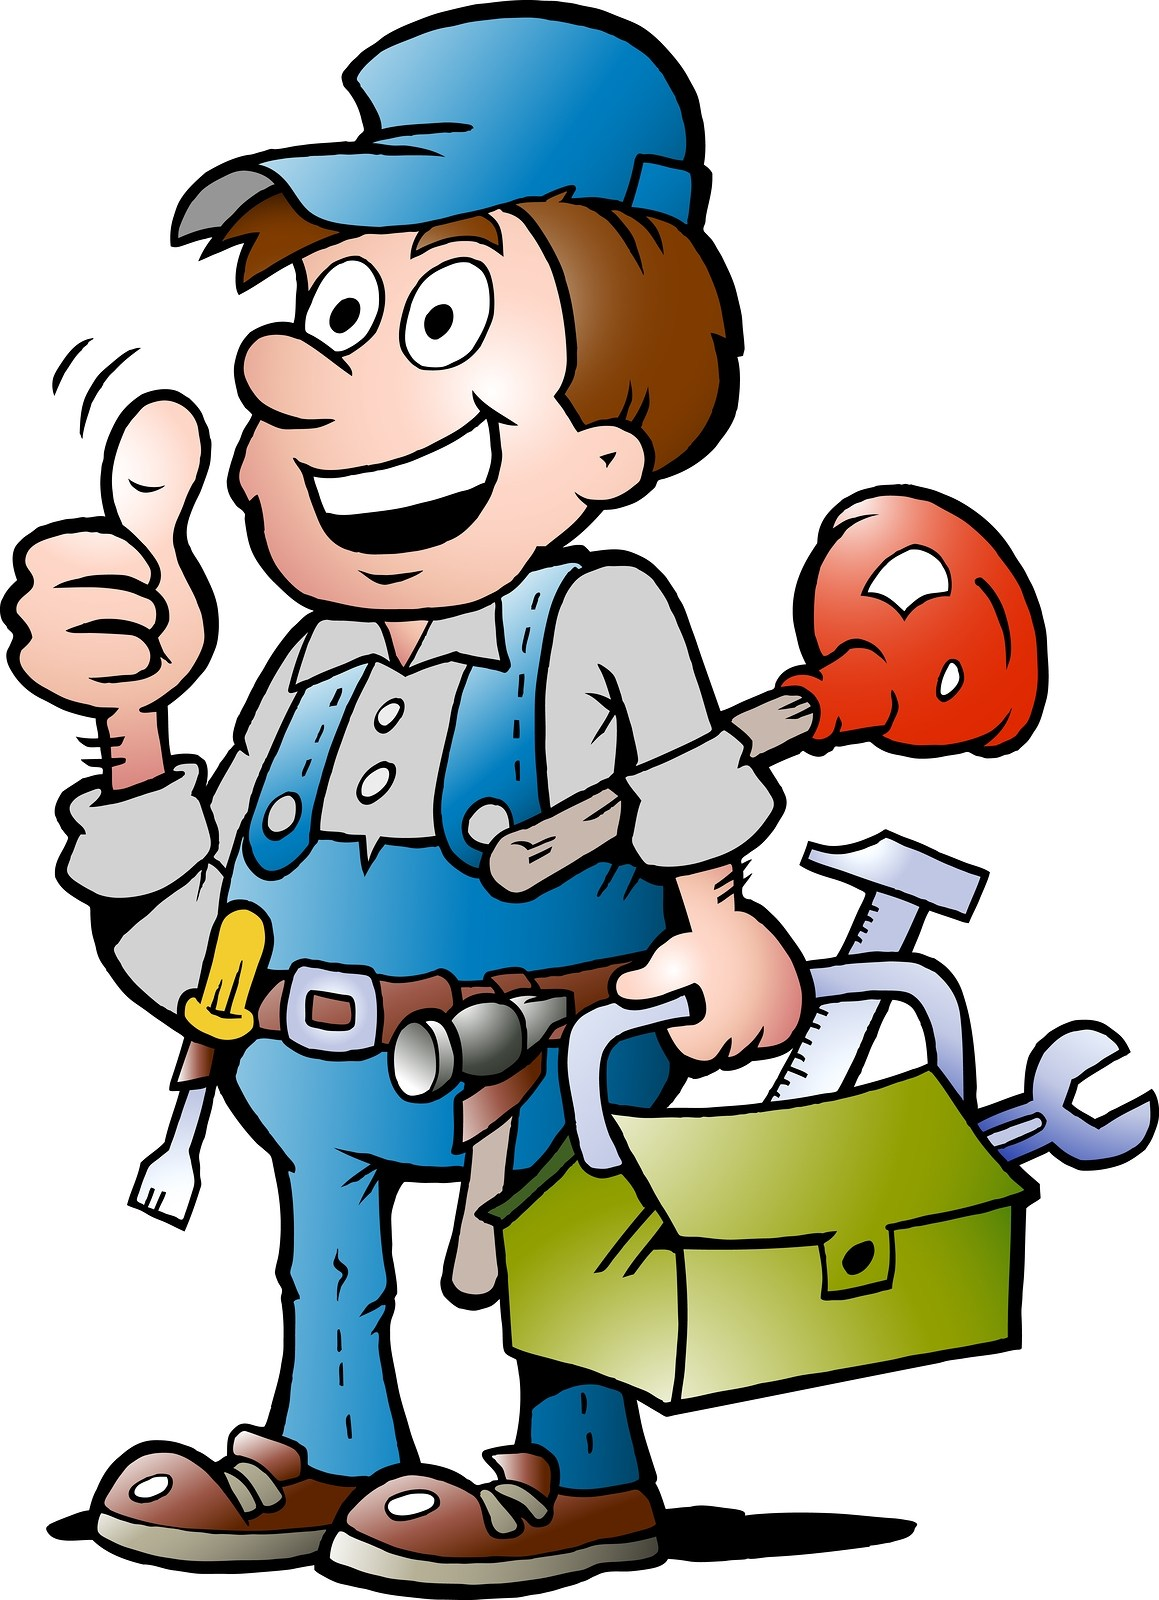 Maintenance man clipart 6 » Clipart Portal.